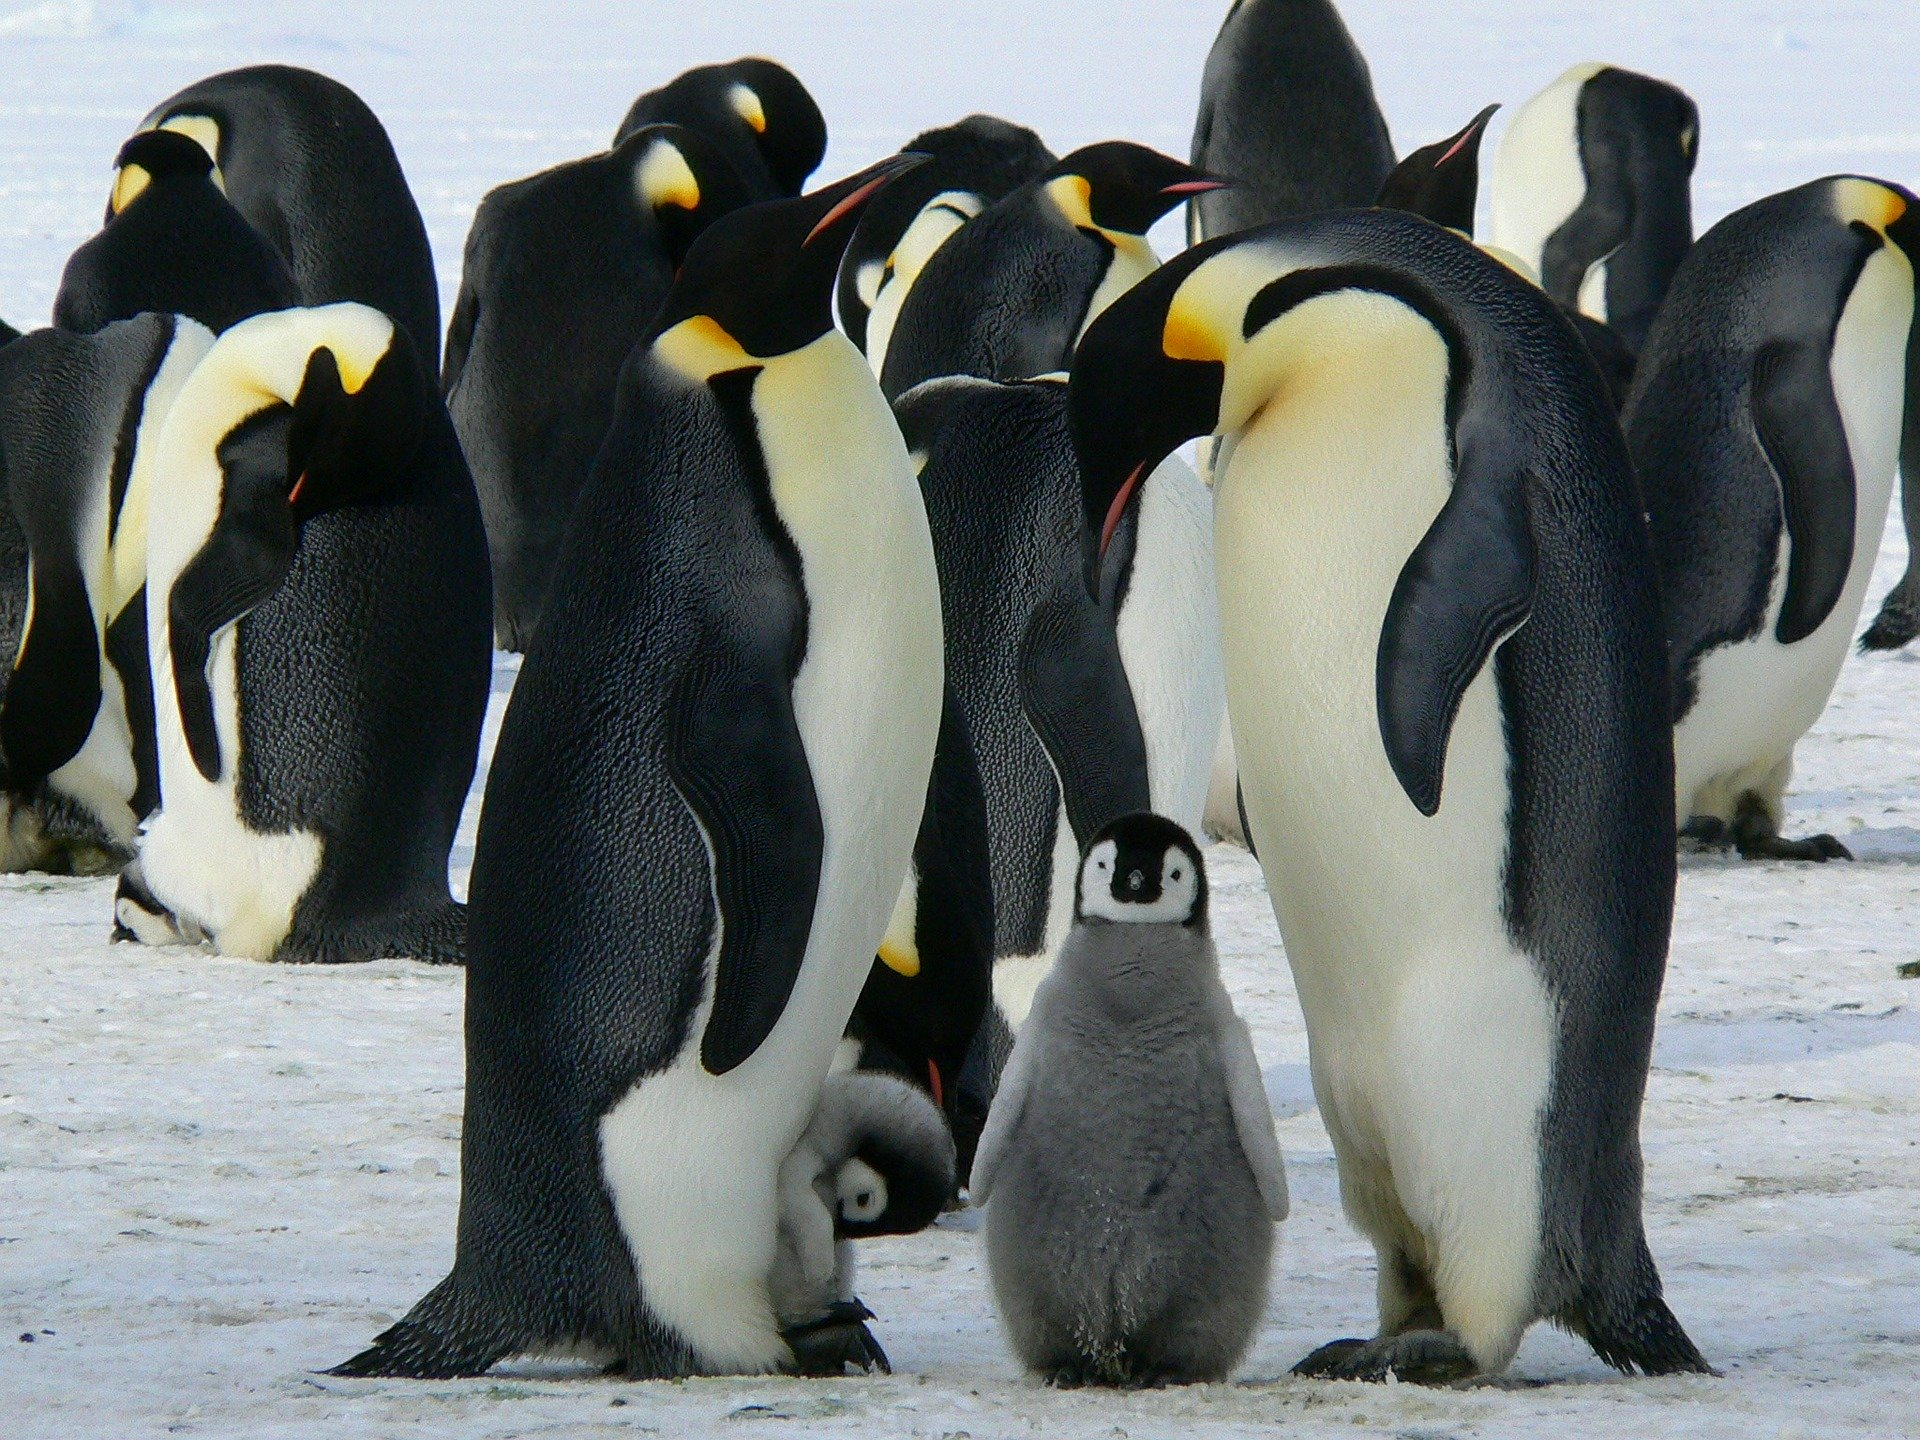 penguins-429128_1920.jpg